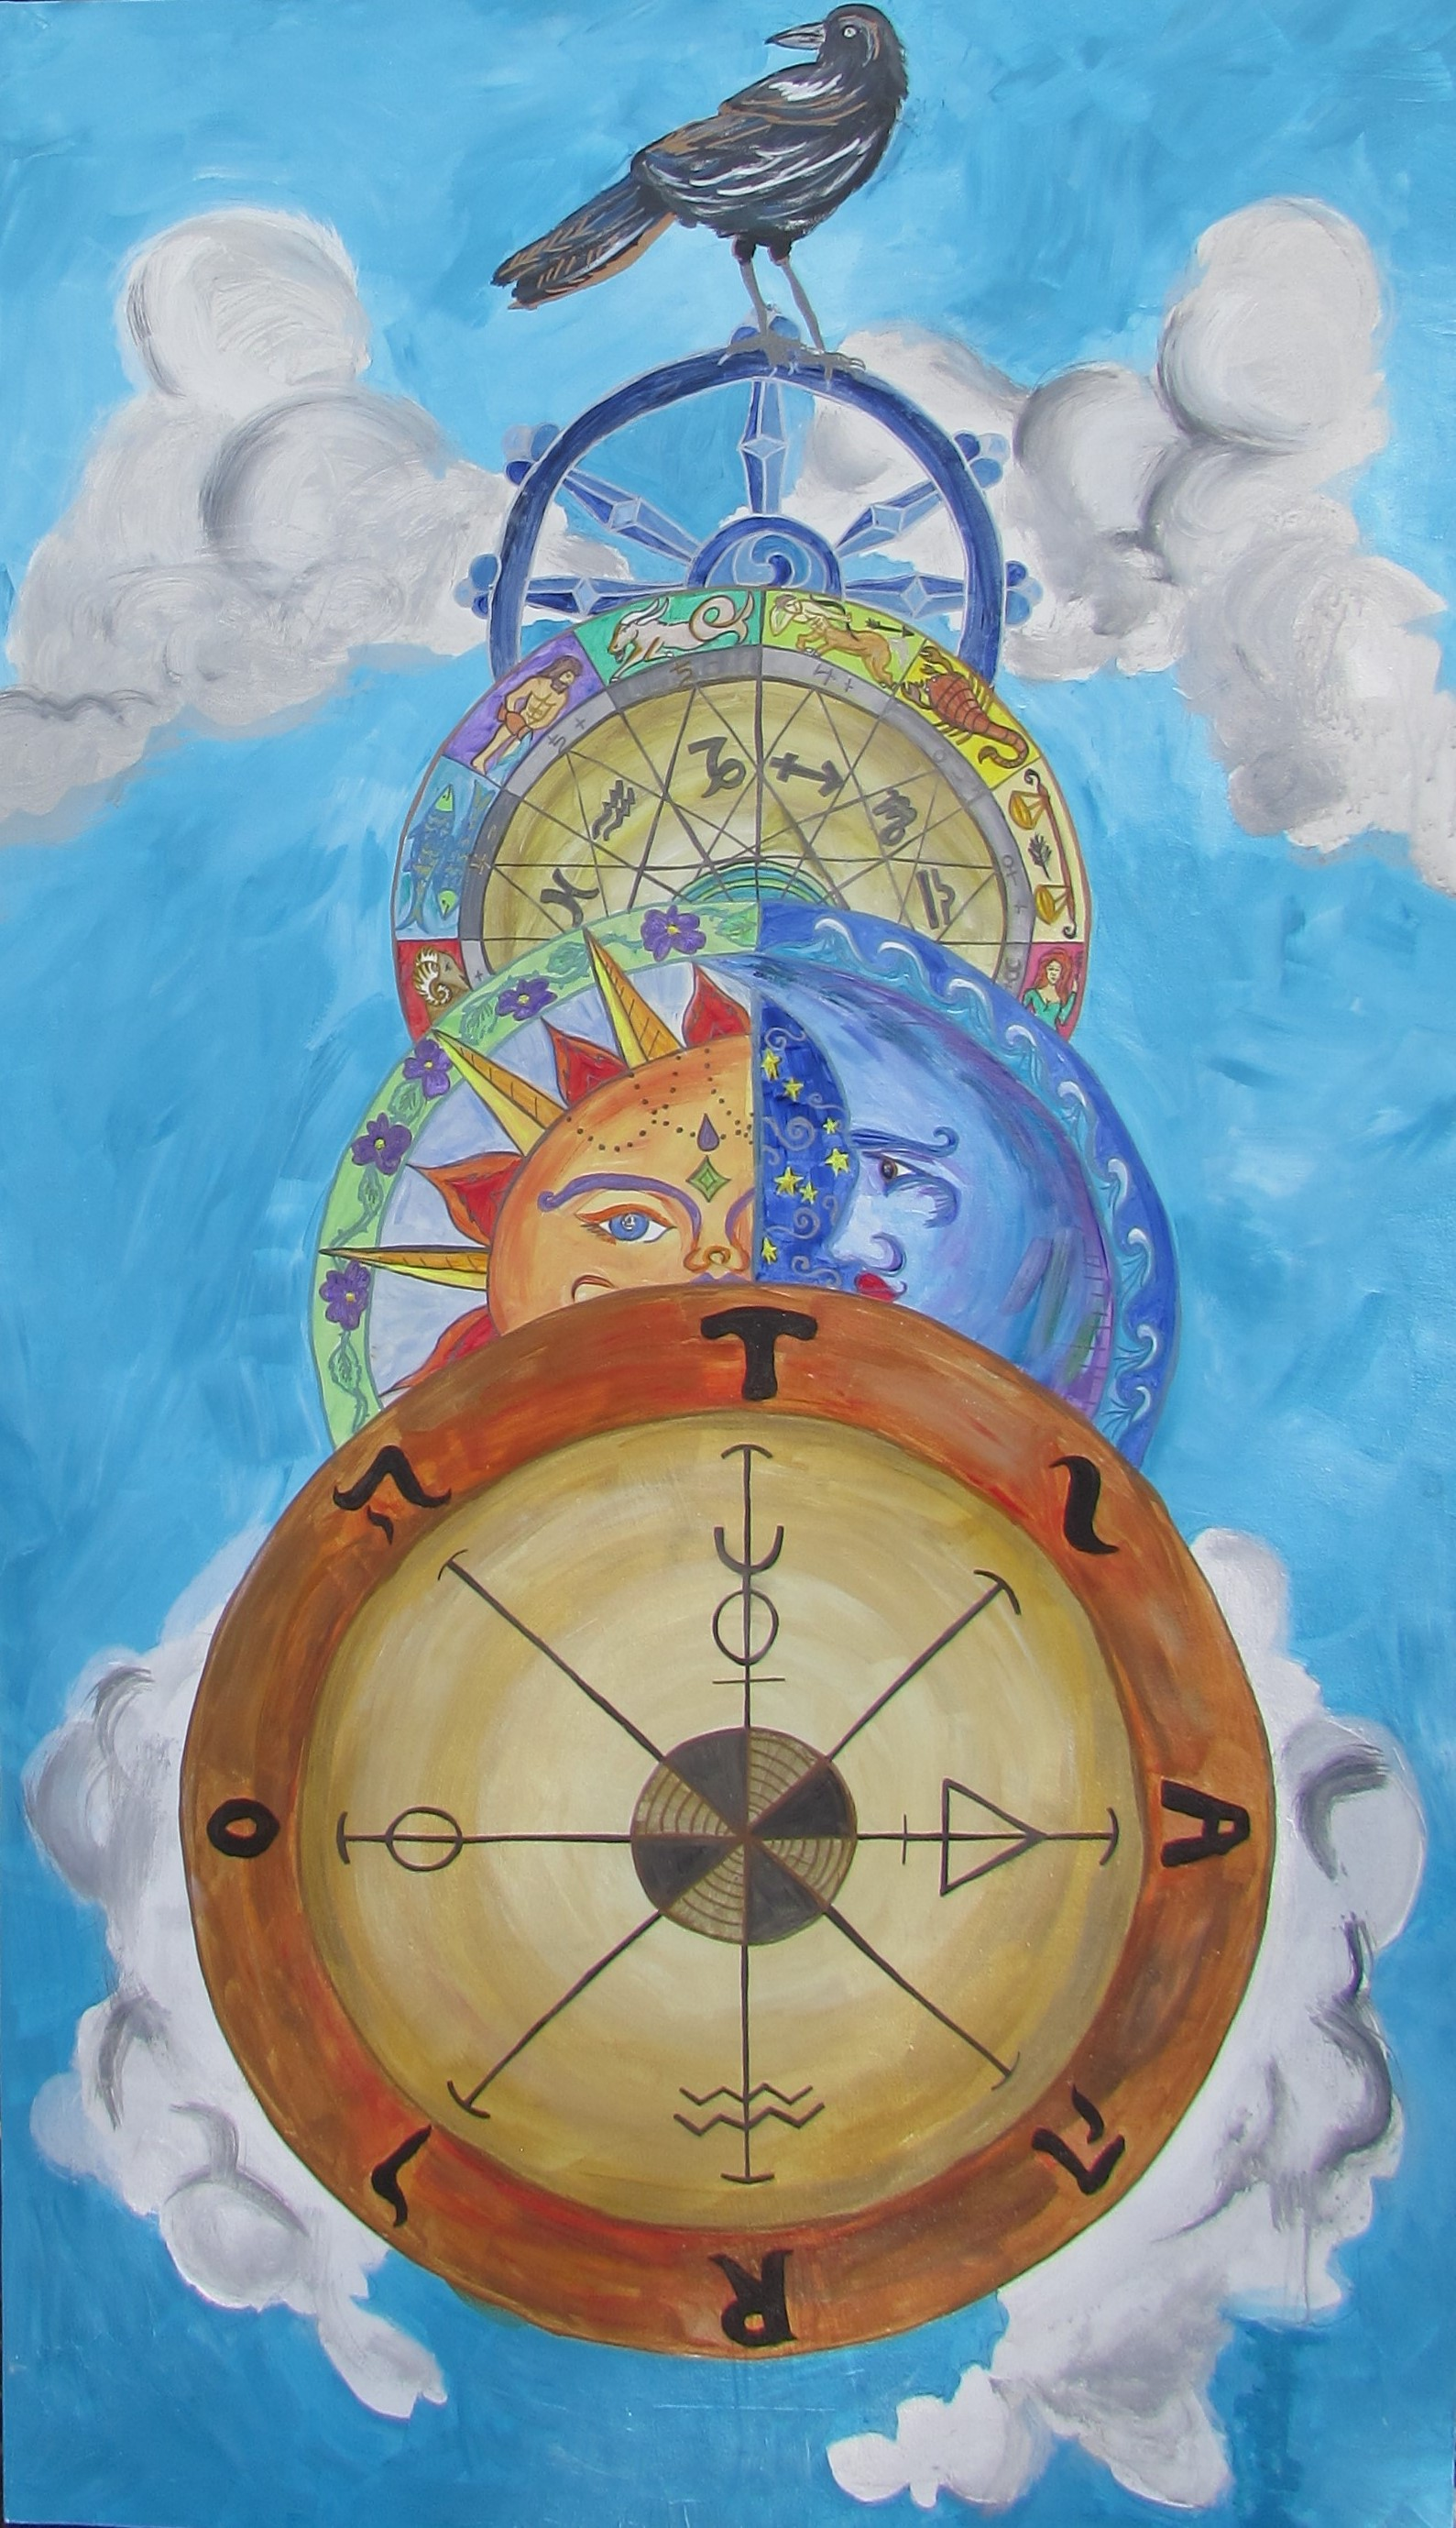 Cycles (Wheel of Fortune)